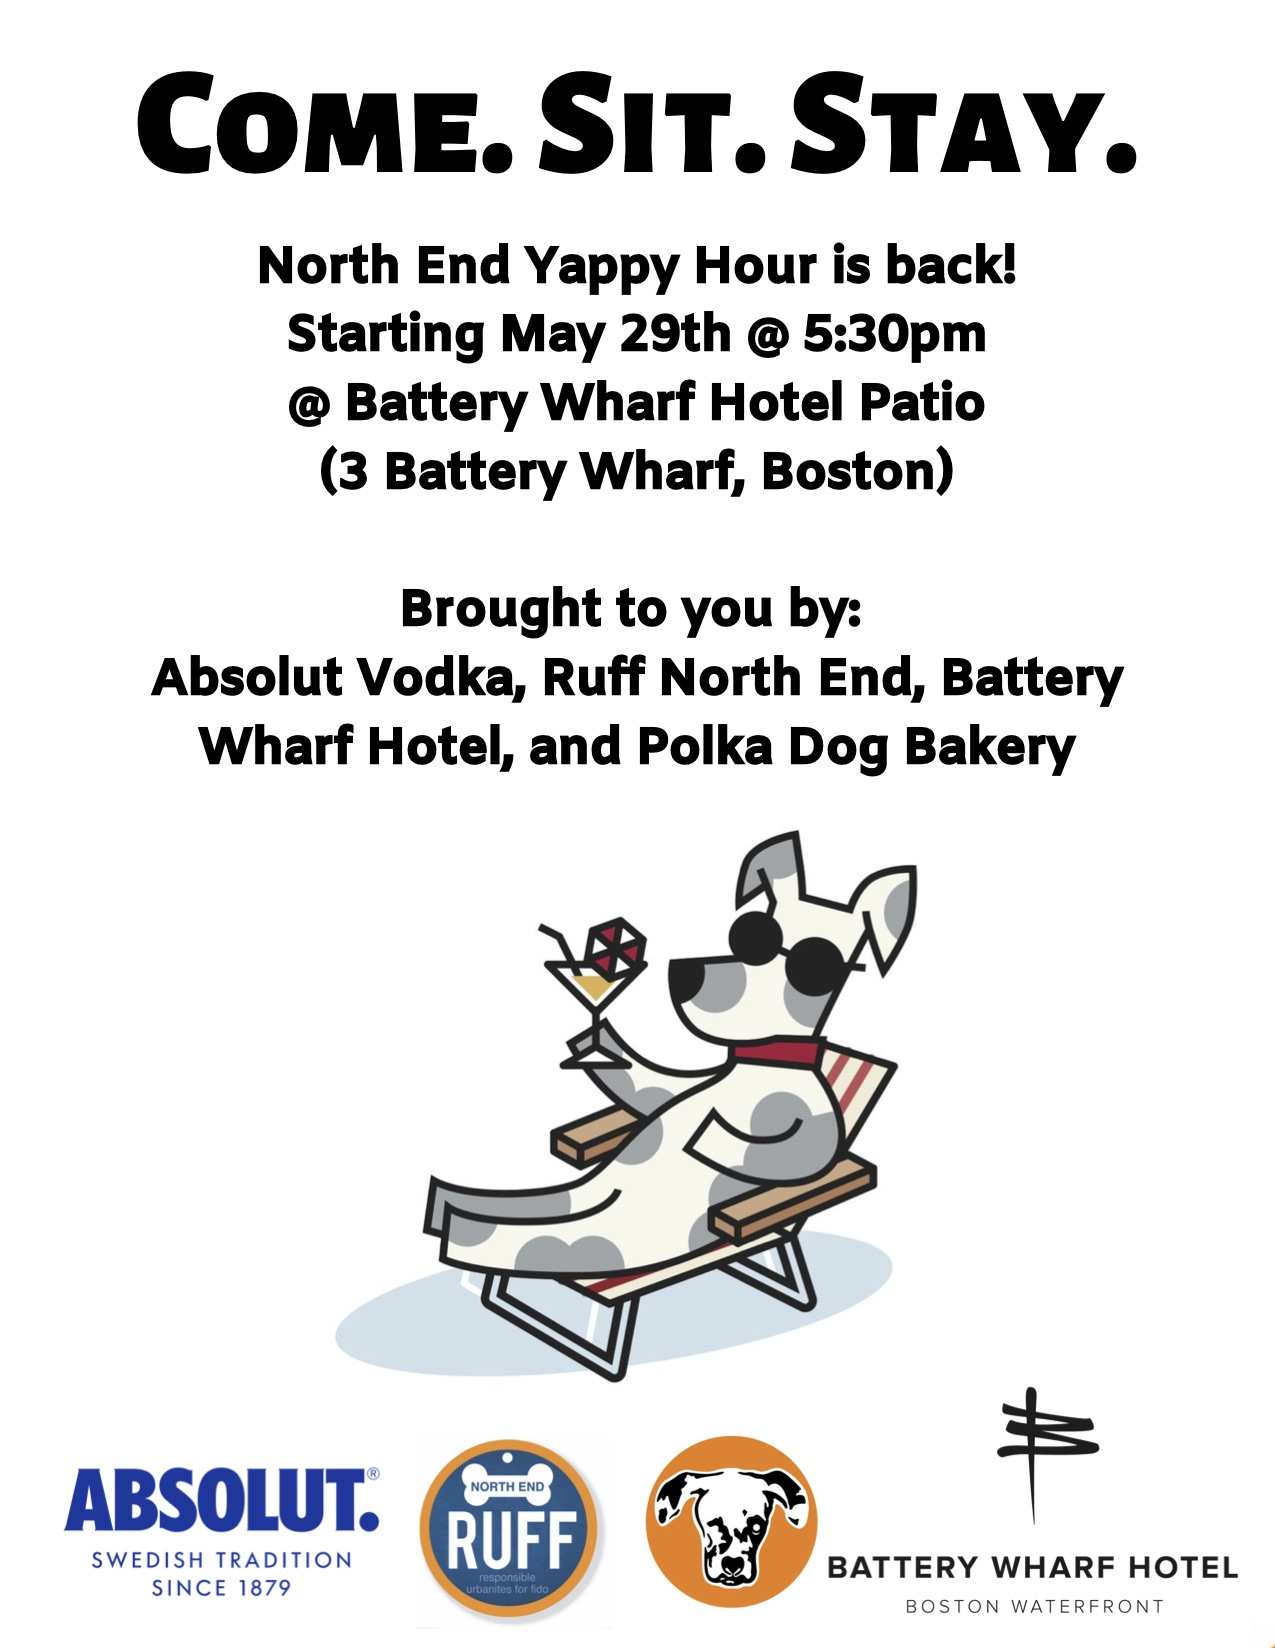 North-End-Yappy-Hour-May-29th-2019-copy.jpg